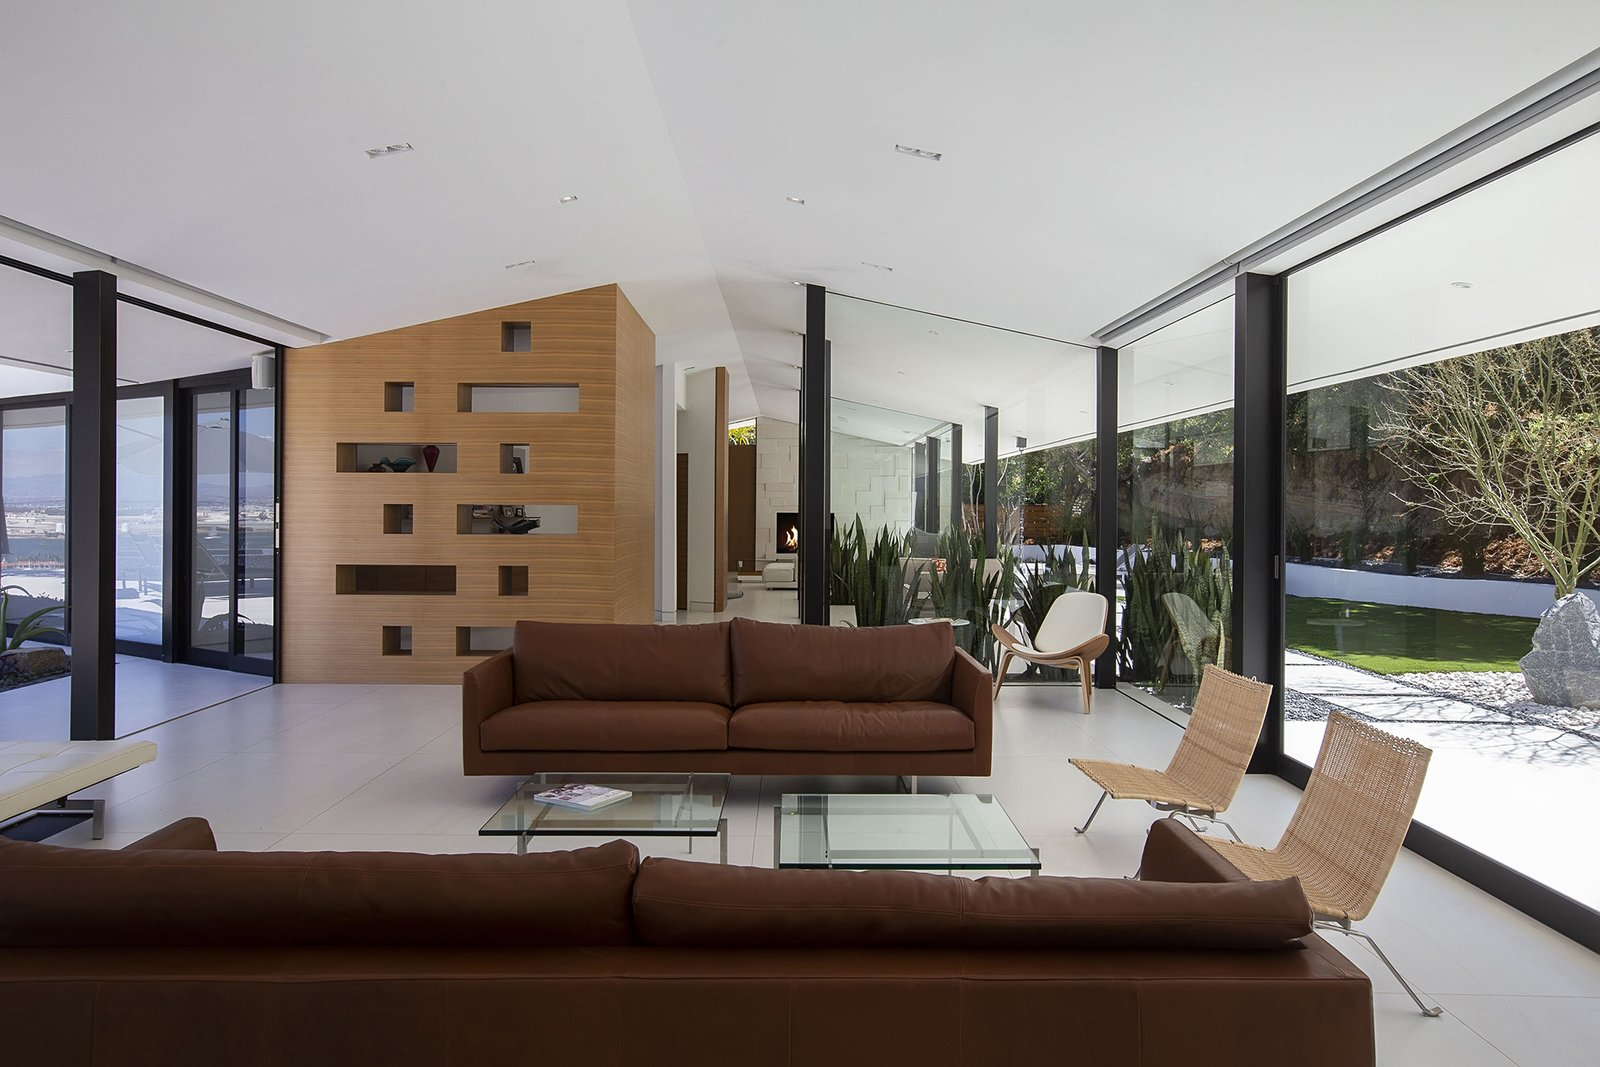 Living, Standard Layout, Sofa, Chair, Recessed, Coffee Tables, Ceramic Tile, and Bench Walls of glass create a seamless flow—integrating the home into its surroundings.  Best Living Standard Layout Bench Photos from A Renovated Midcentury in San Diego Is Sharp and Sustainable